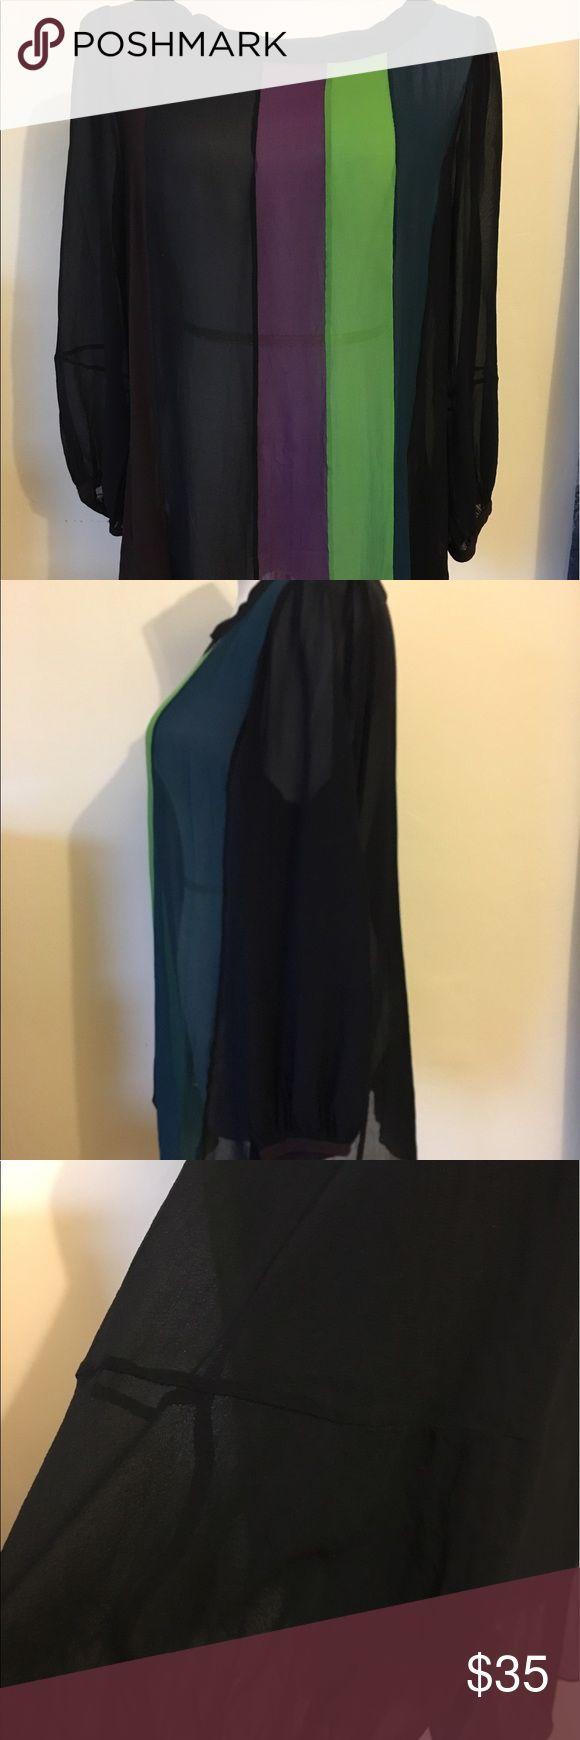 "DKNY Sheer Silk Striped Overized 👚 w/ Pockets Totally sheer with beautiful colors. Black navy purple green teal. Puckered shoulders. Two hip pockets. Looks good Oversized on a size Small or true to size. Very flowy. 40"" bust 17"" shoulders 20.5"" sleeves 27"" back of neck to hem DKNY Tops Blouses"